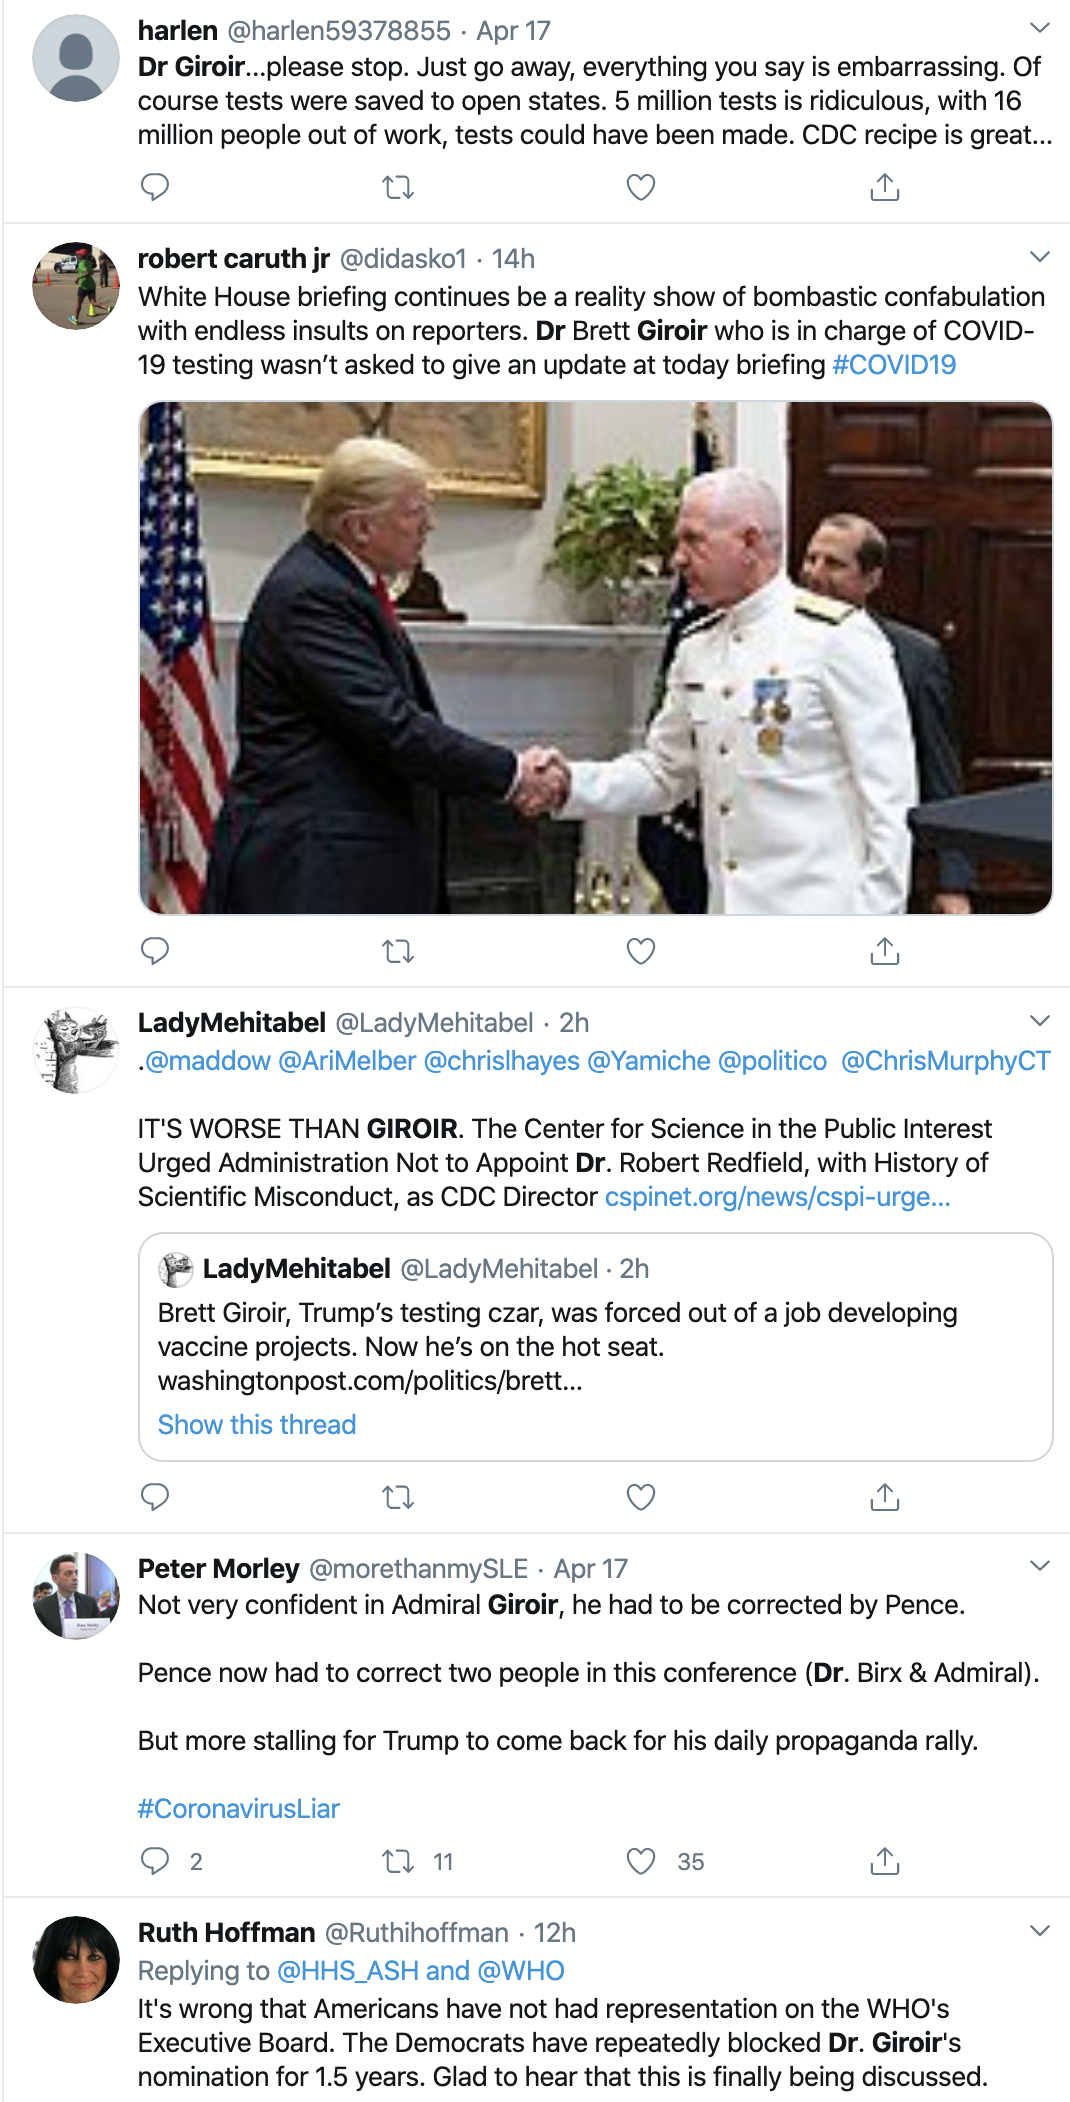 Screen-Shot-2020-04-20-at-10.37.29-AM Dirt Uncovered About Trump's New Virus Testing Czar Corruption Featured Healthcare Politics Top Stories